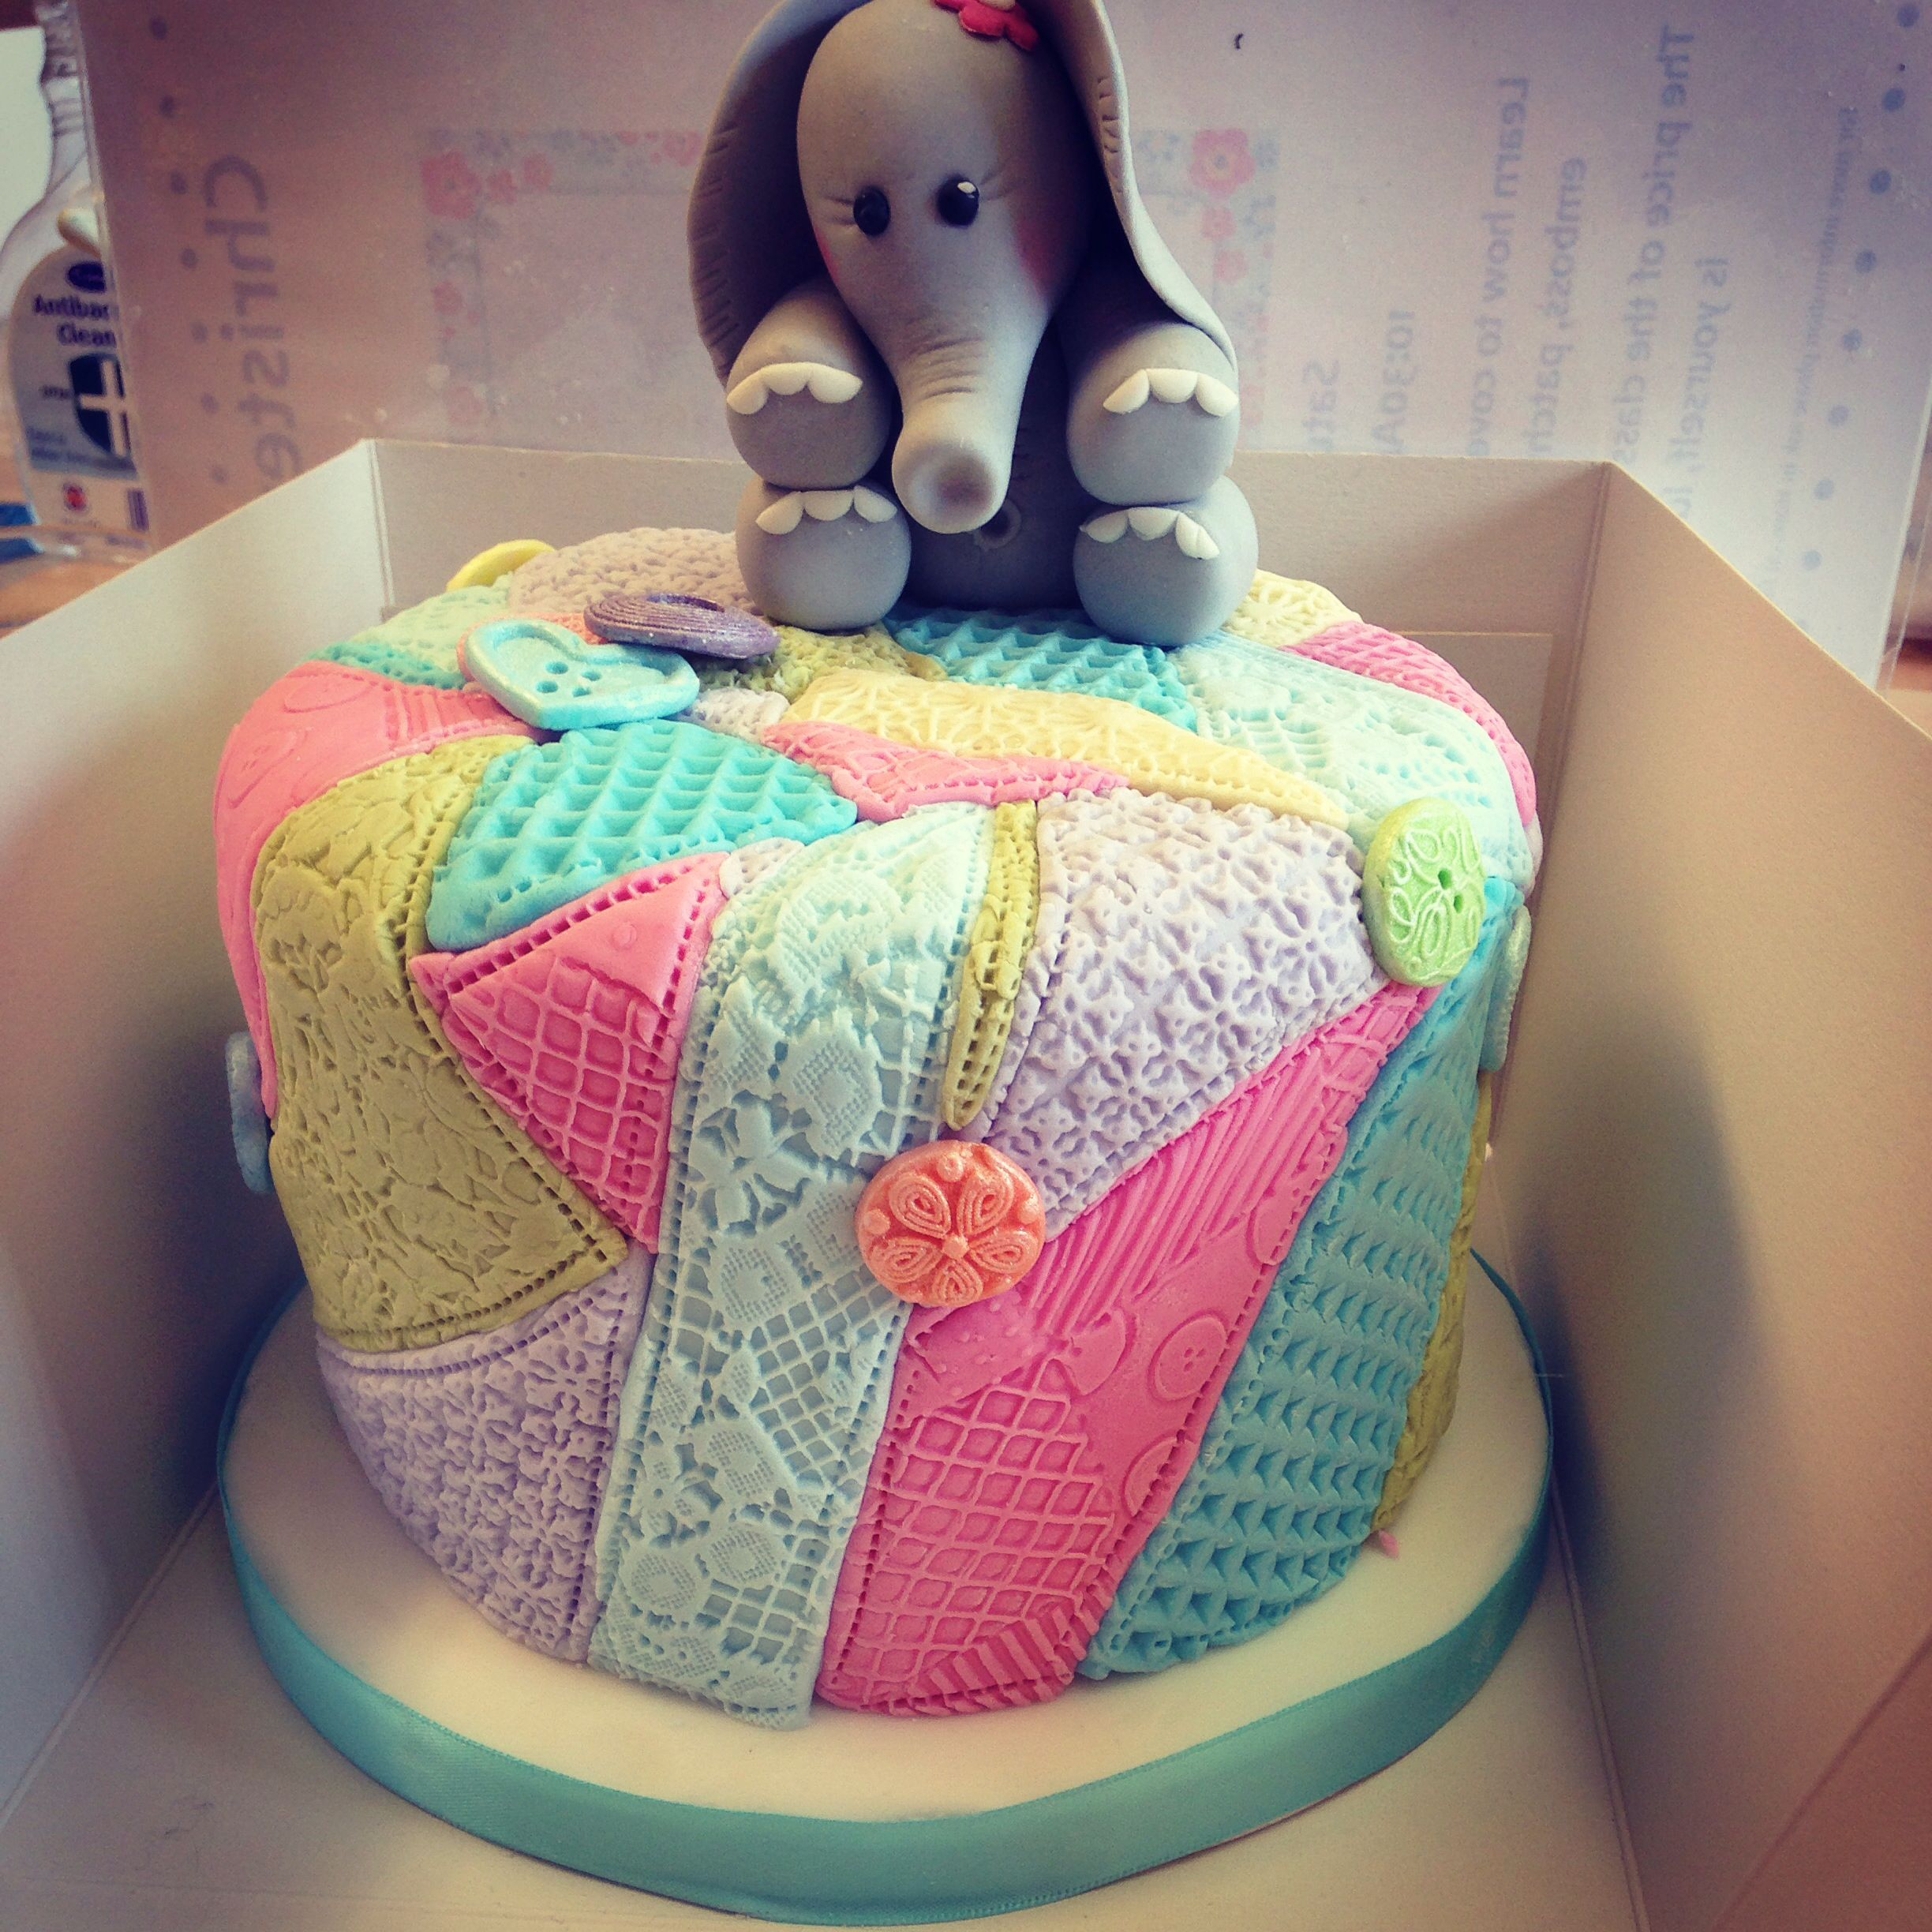 Quilted patchwork cake